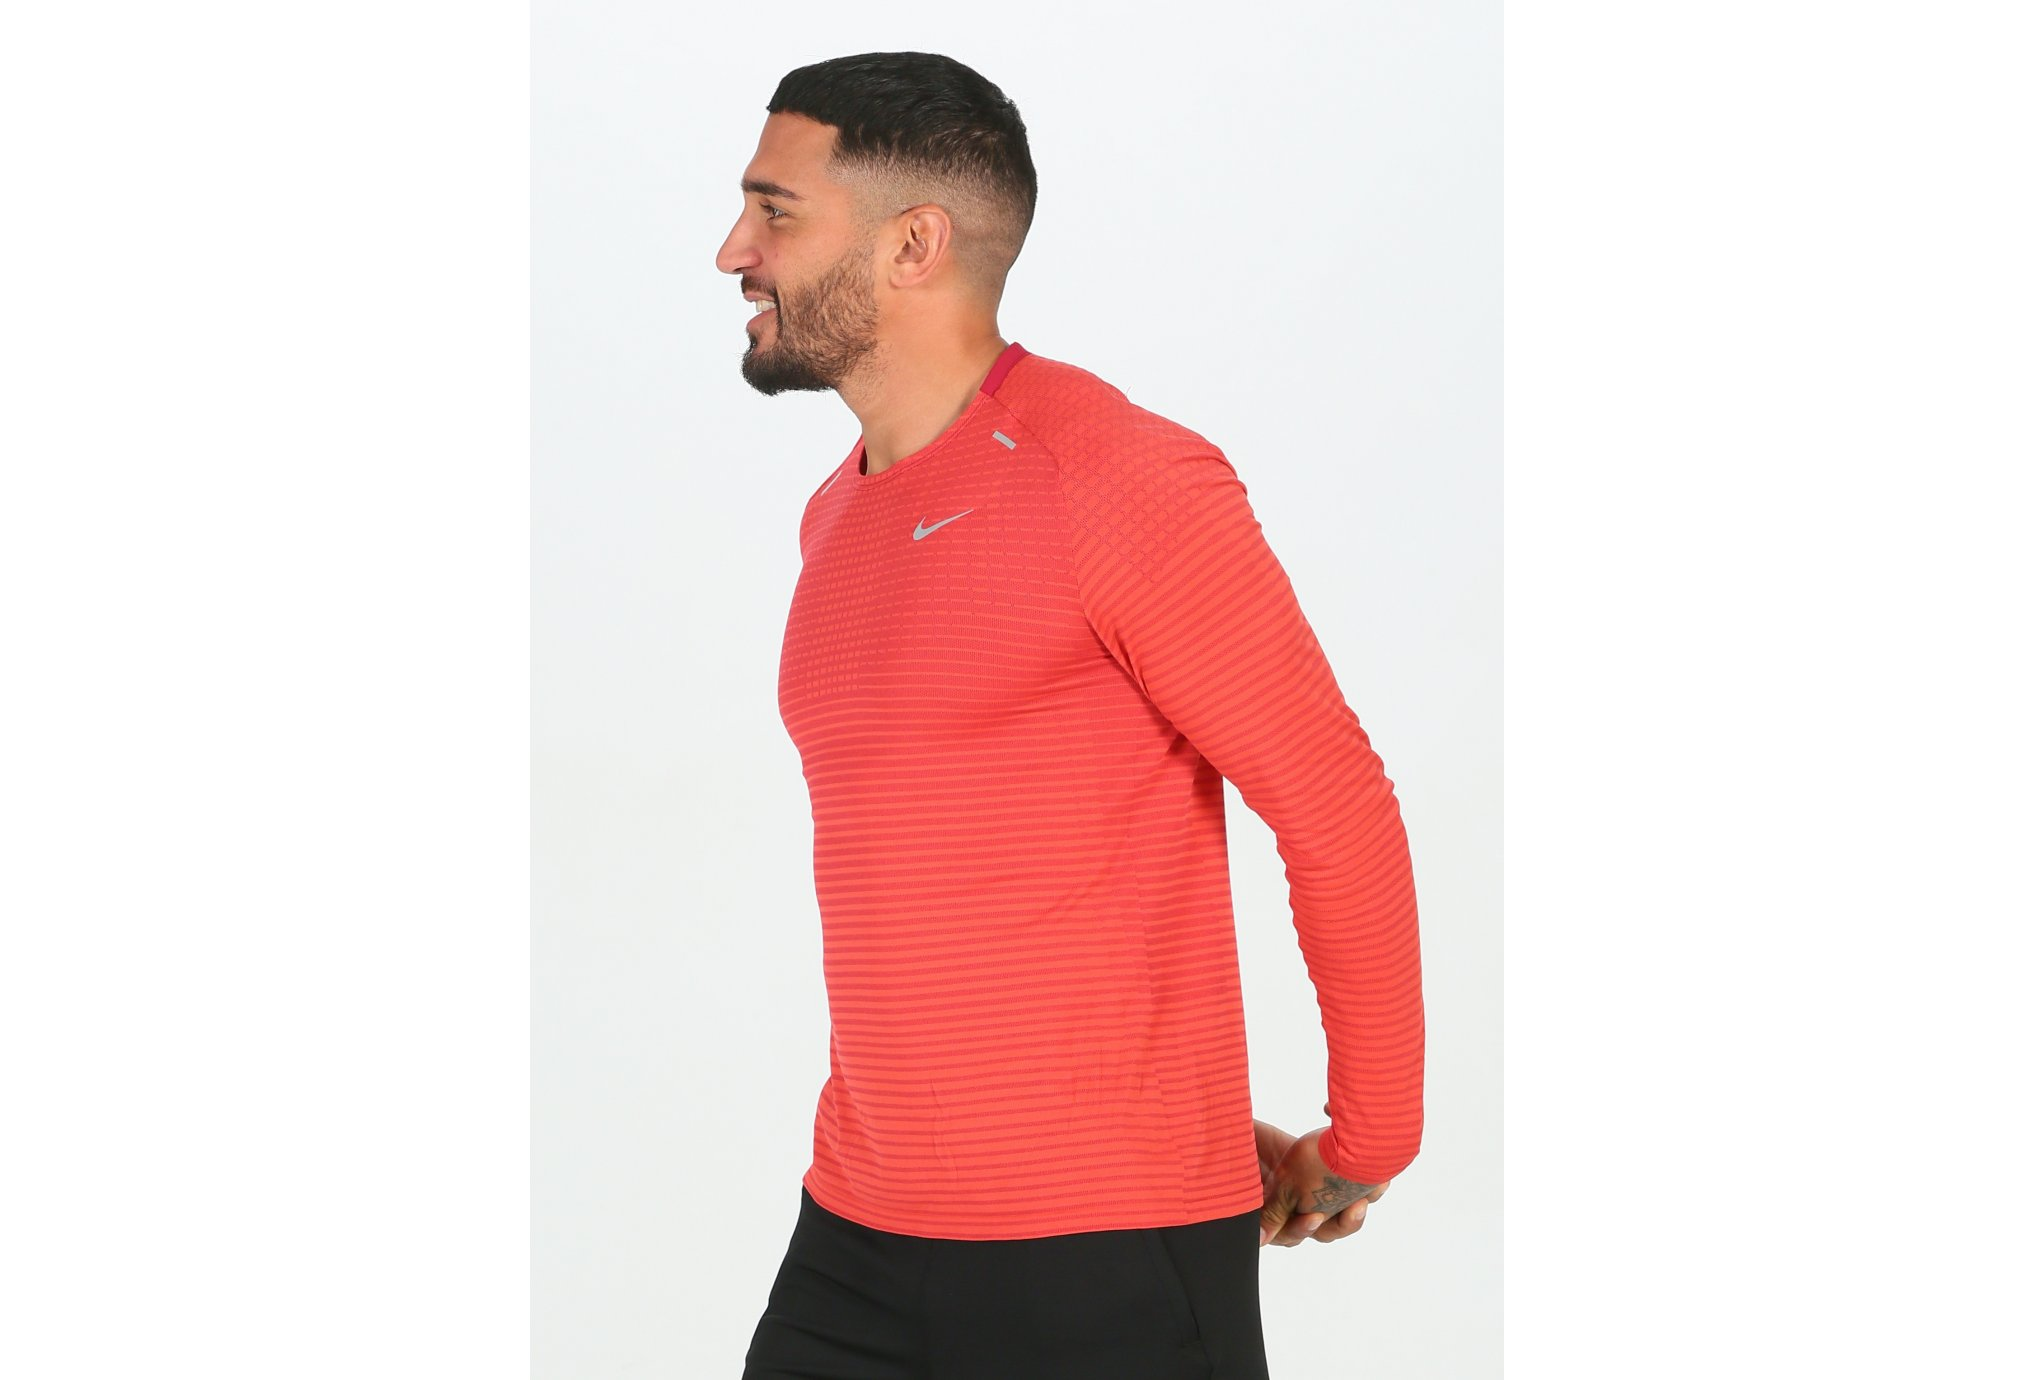 Nike TechKnit Cool Ultra M vêtement running homme